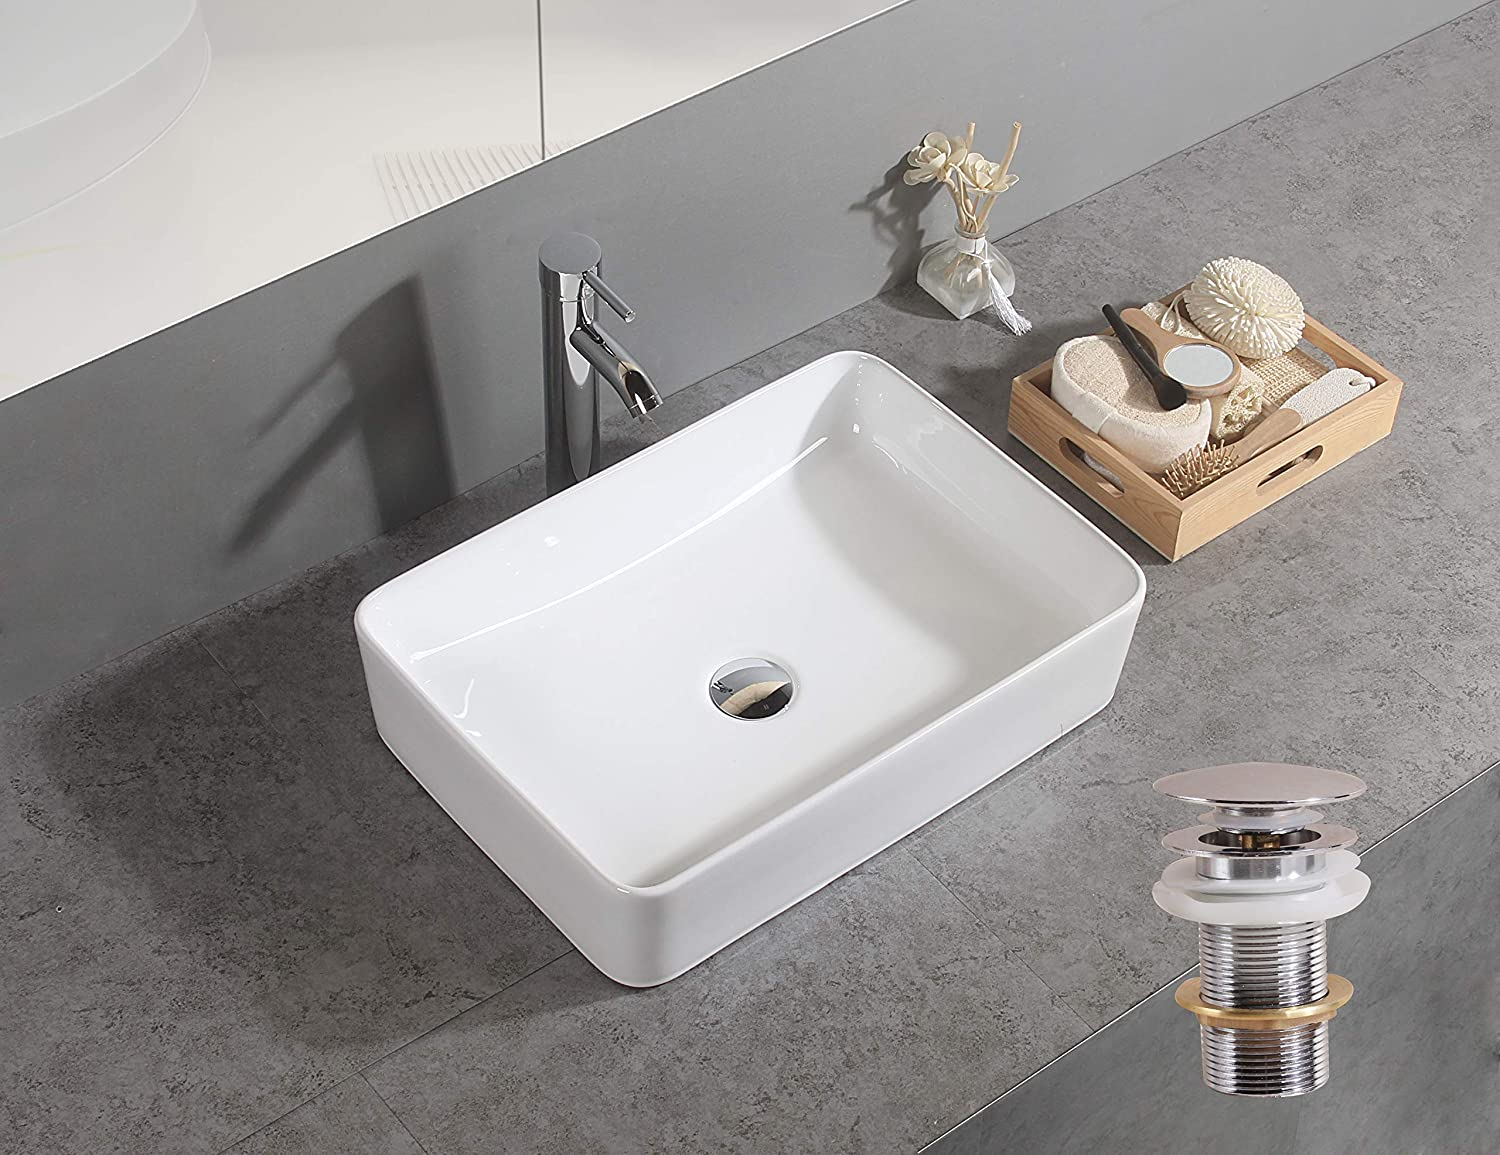 Chrome Bottle Trap Basin Sink Waste Bathroom Sink Pipe and Unslotted Click Clack Basin Waste Pop Up Waste Without Overflow